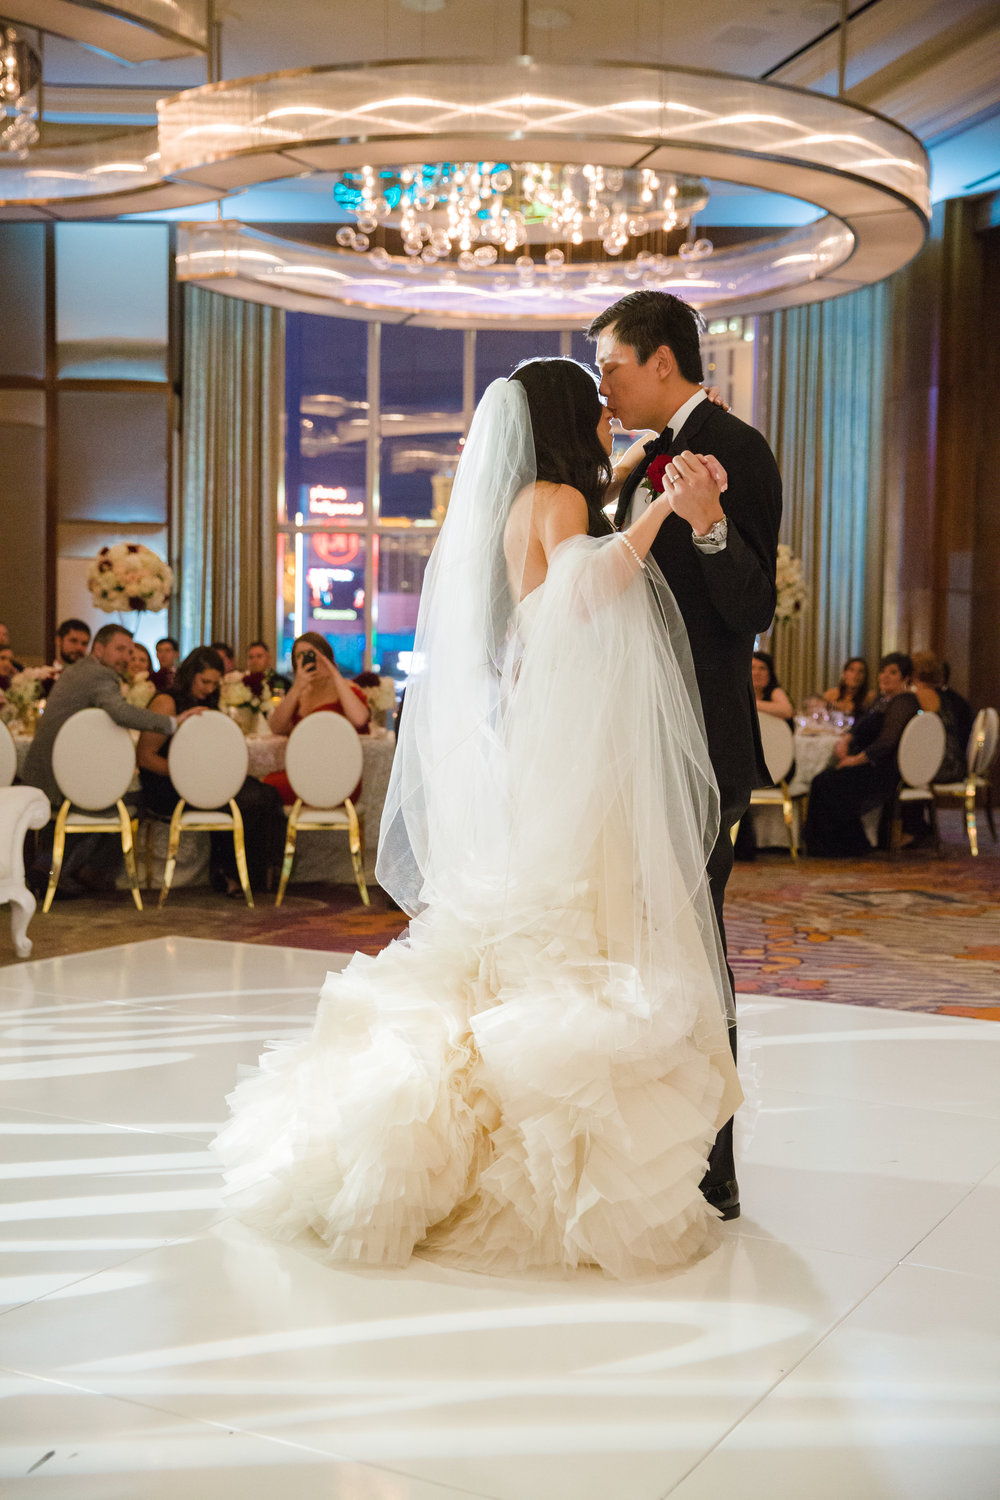 First dance on high gloss white dance floor.  Bride in Vera Wang with beautiful veil.  Luxury wedding at the Mandarin Oriental with a color scheme of white, blush, and pops of wine red produced by Las Vegas Wedding Planner Andrea Eppolito with photos by Stephen Salazar Photography.